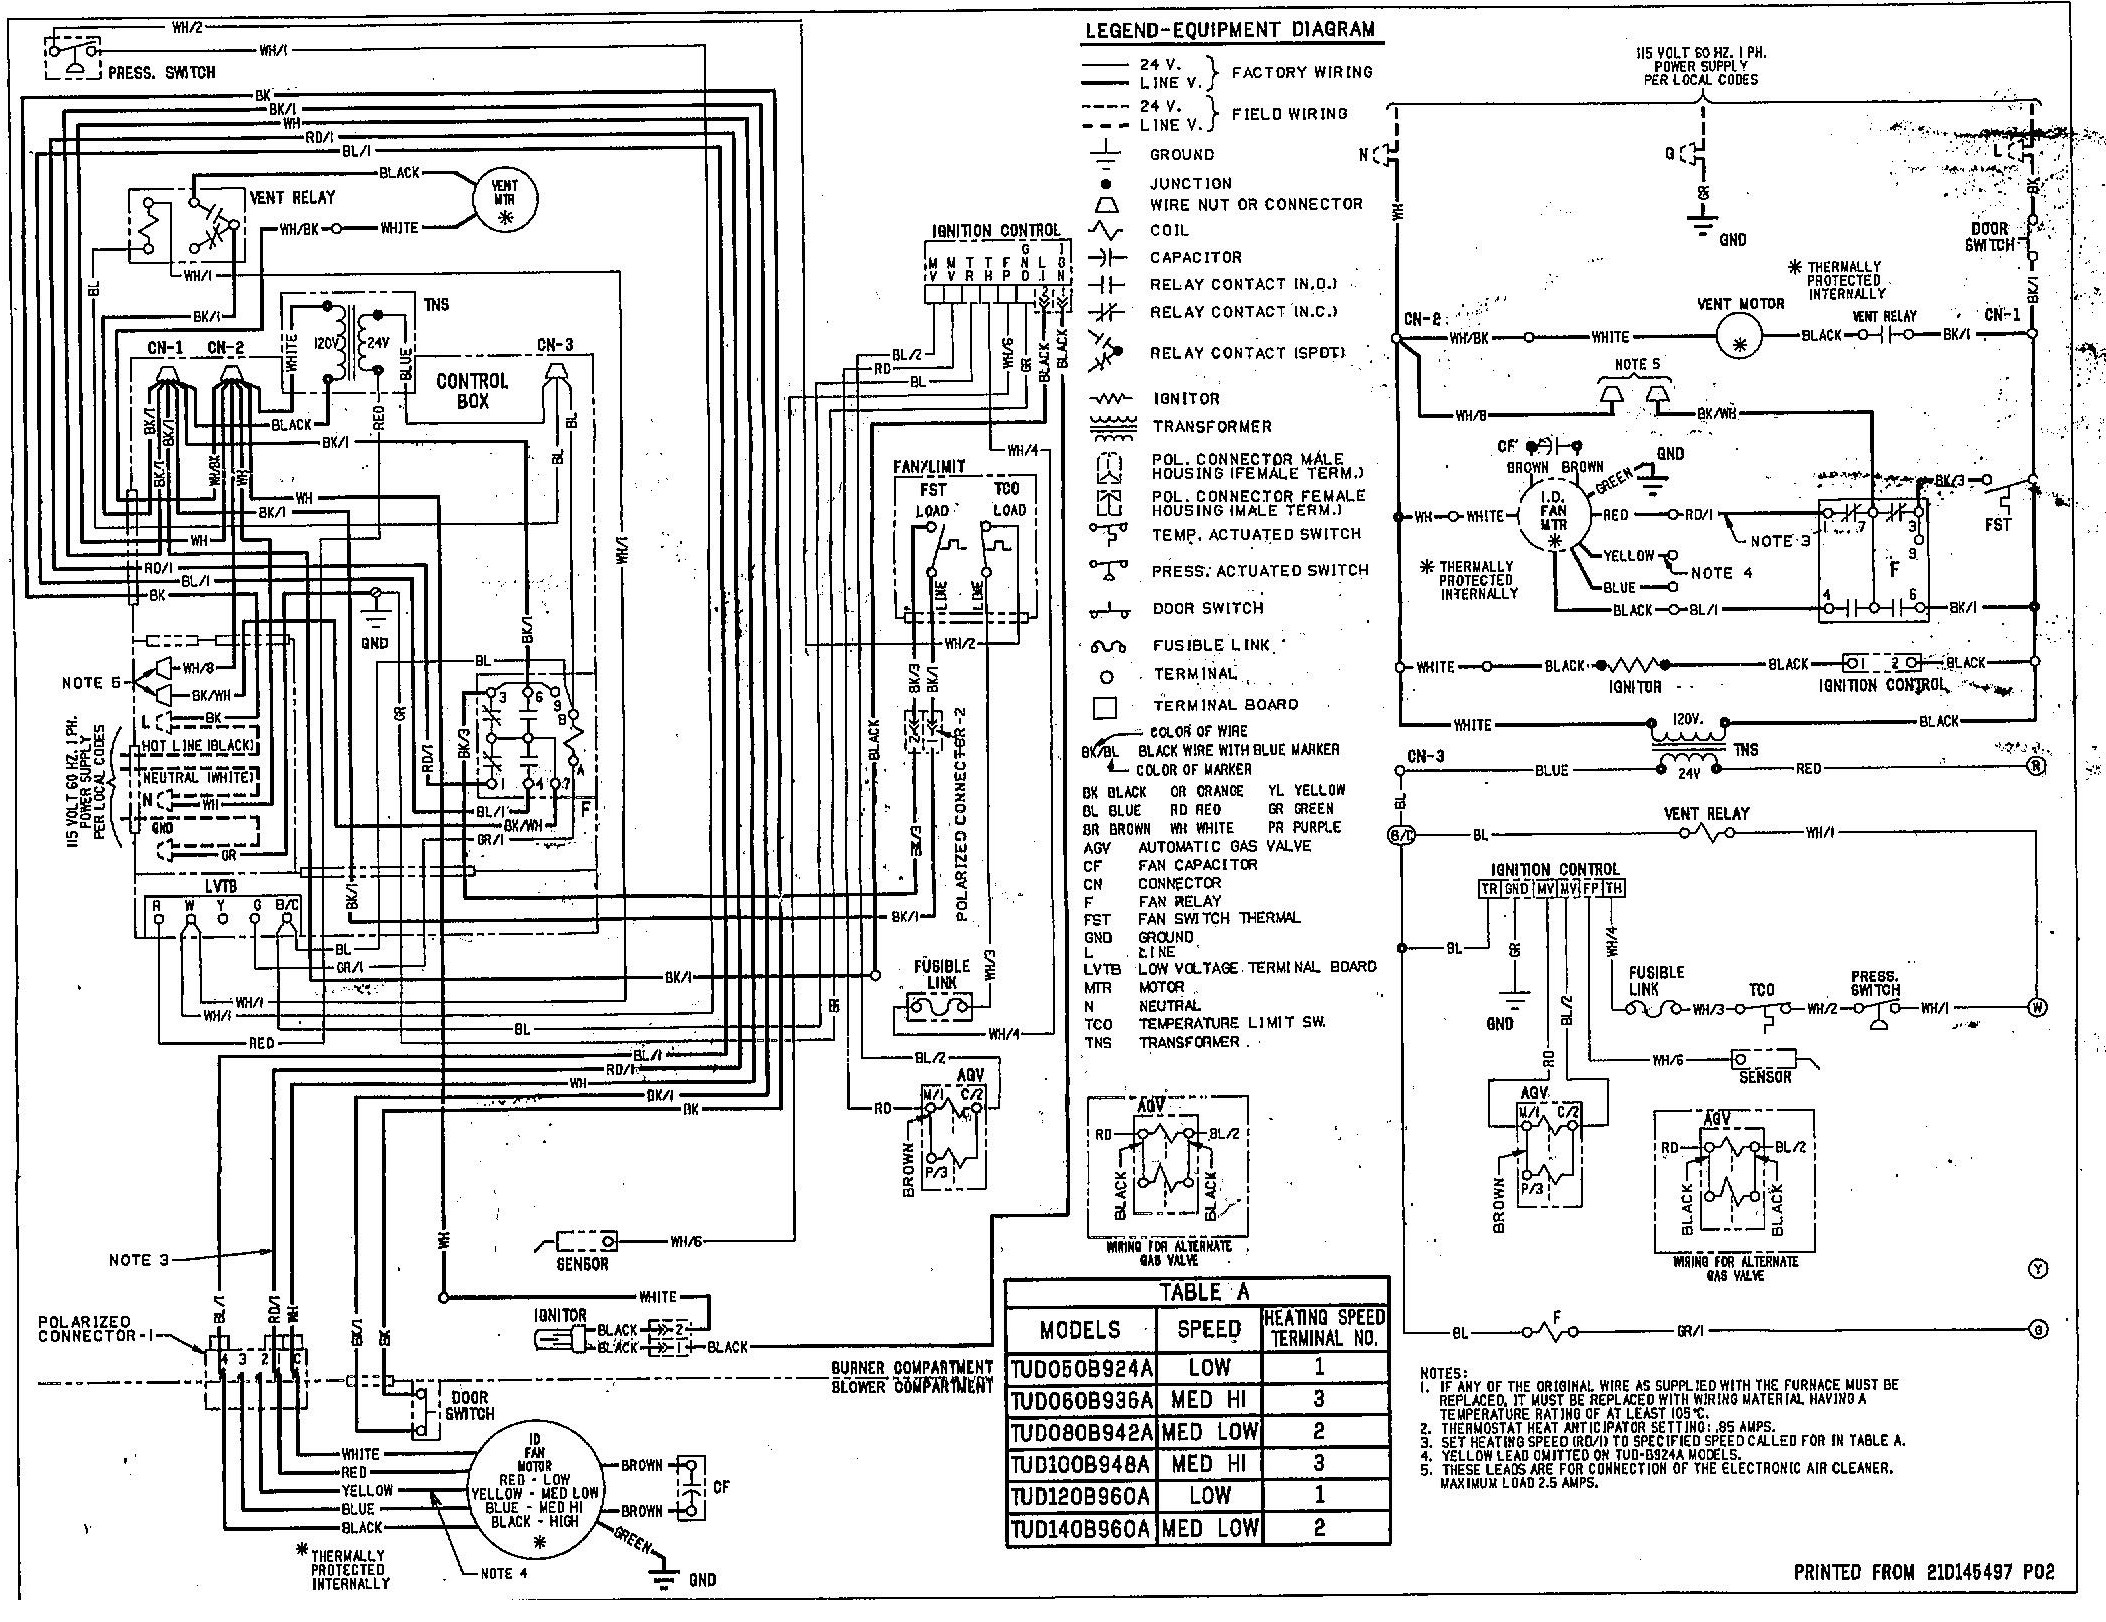 Weatherking Air Handler Wiring Diagram